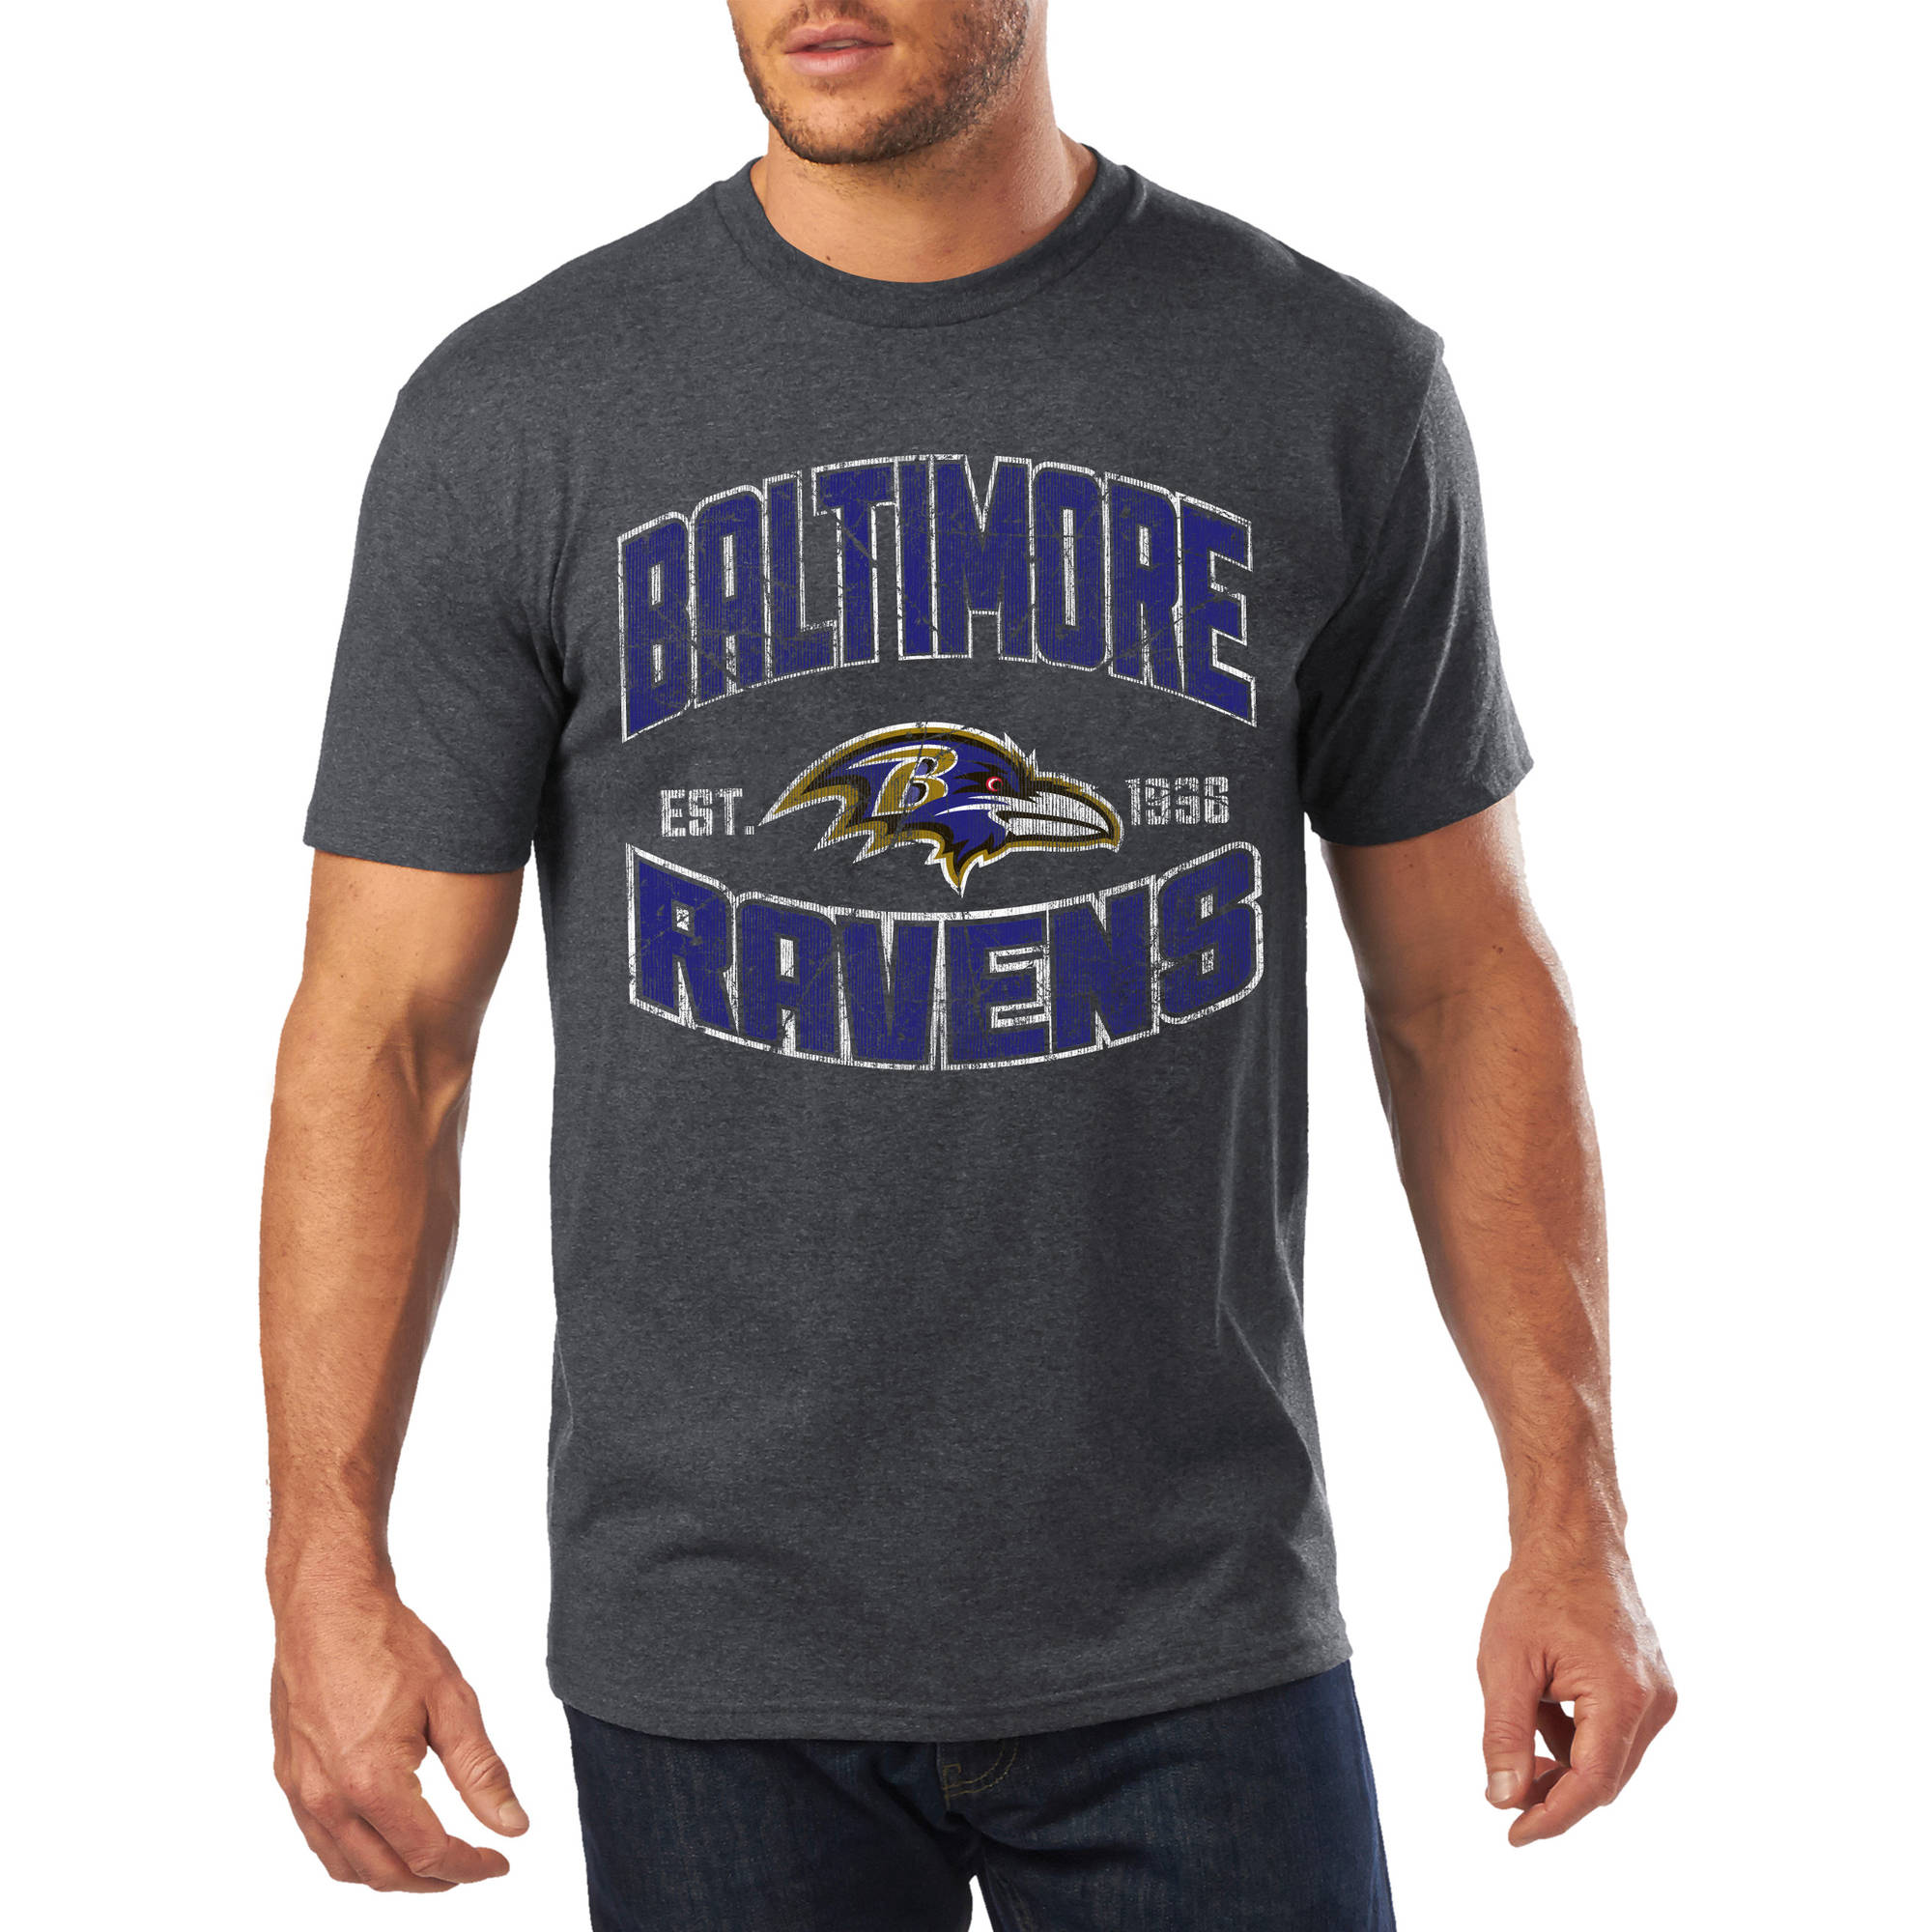 Men's NFL Baltimore Ravens Short Sleeve Tee